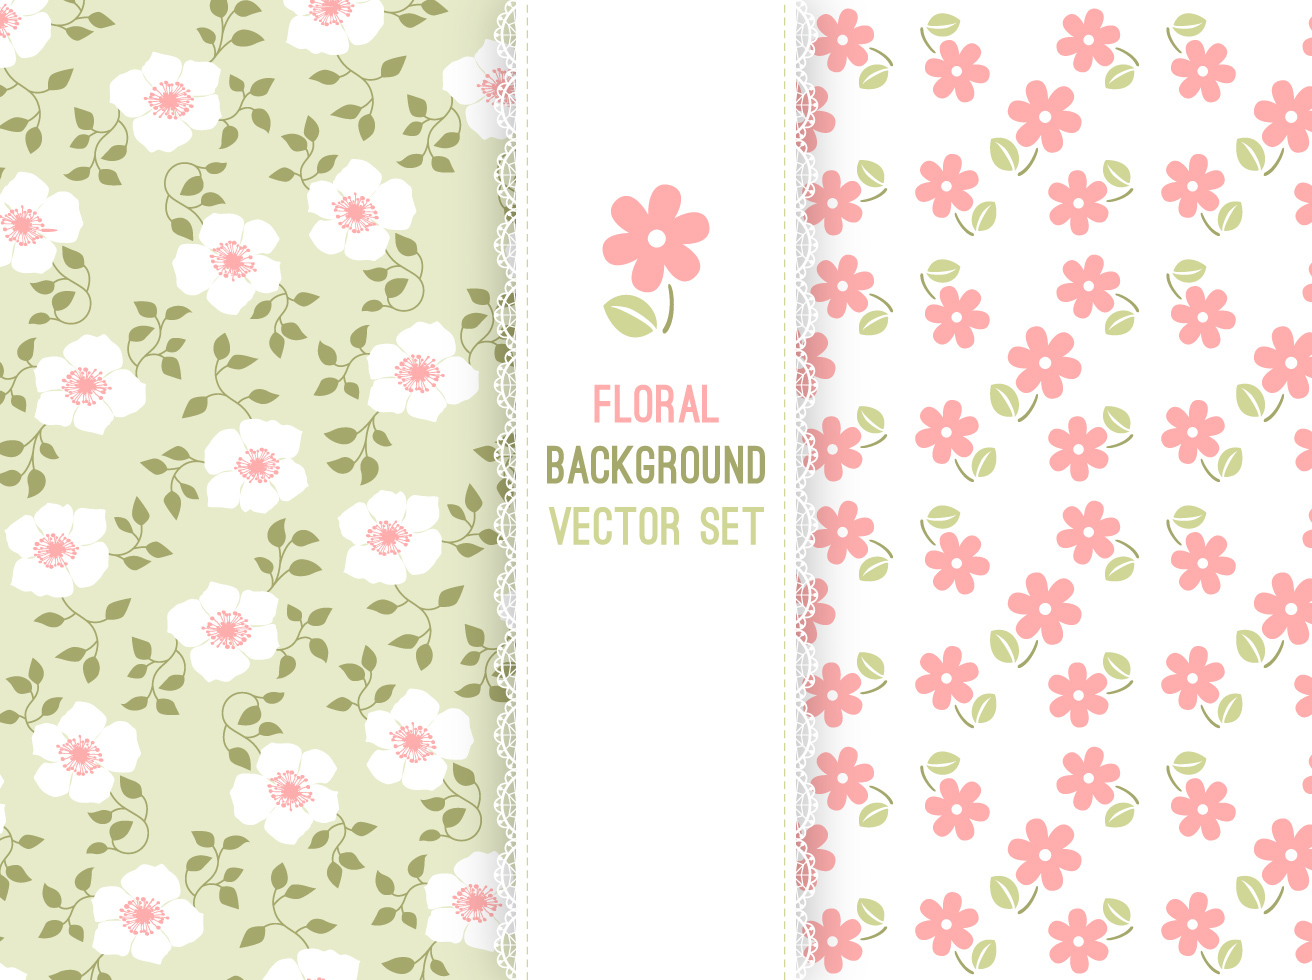 Free Pink Floral Background Free Vector Floral Background Set With on Pink Floral Background Vectors Free